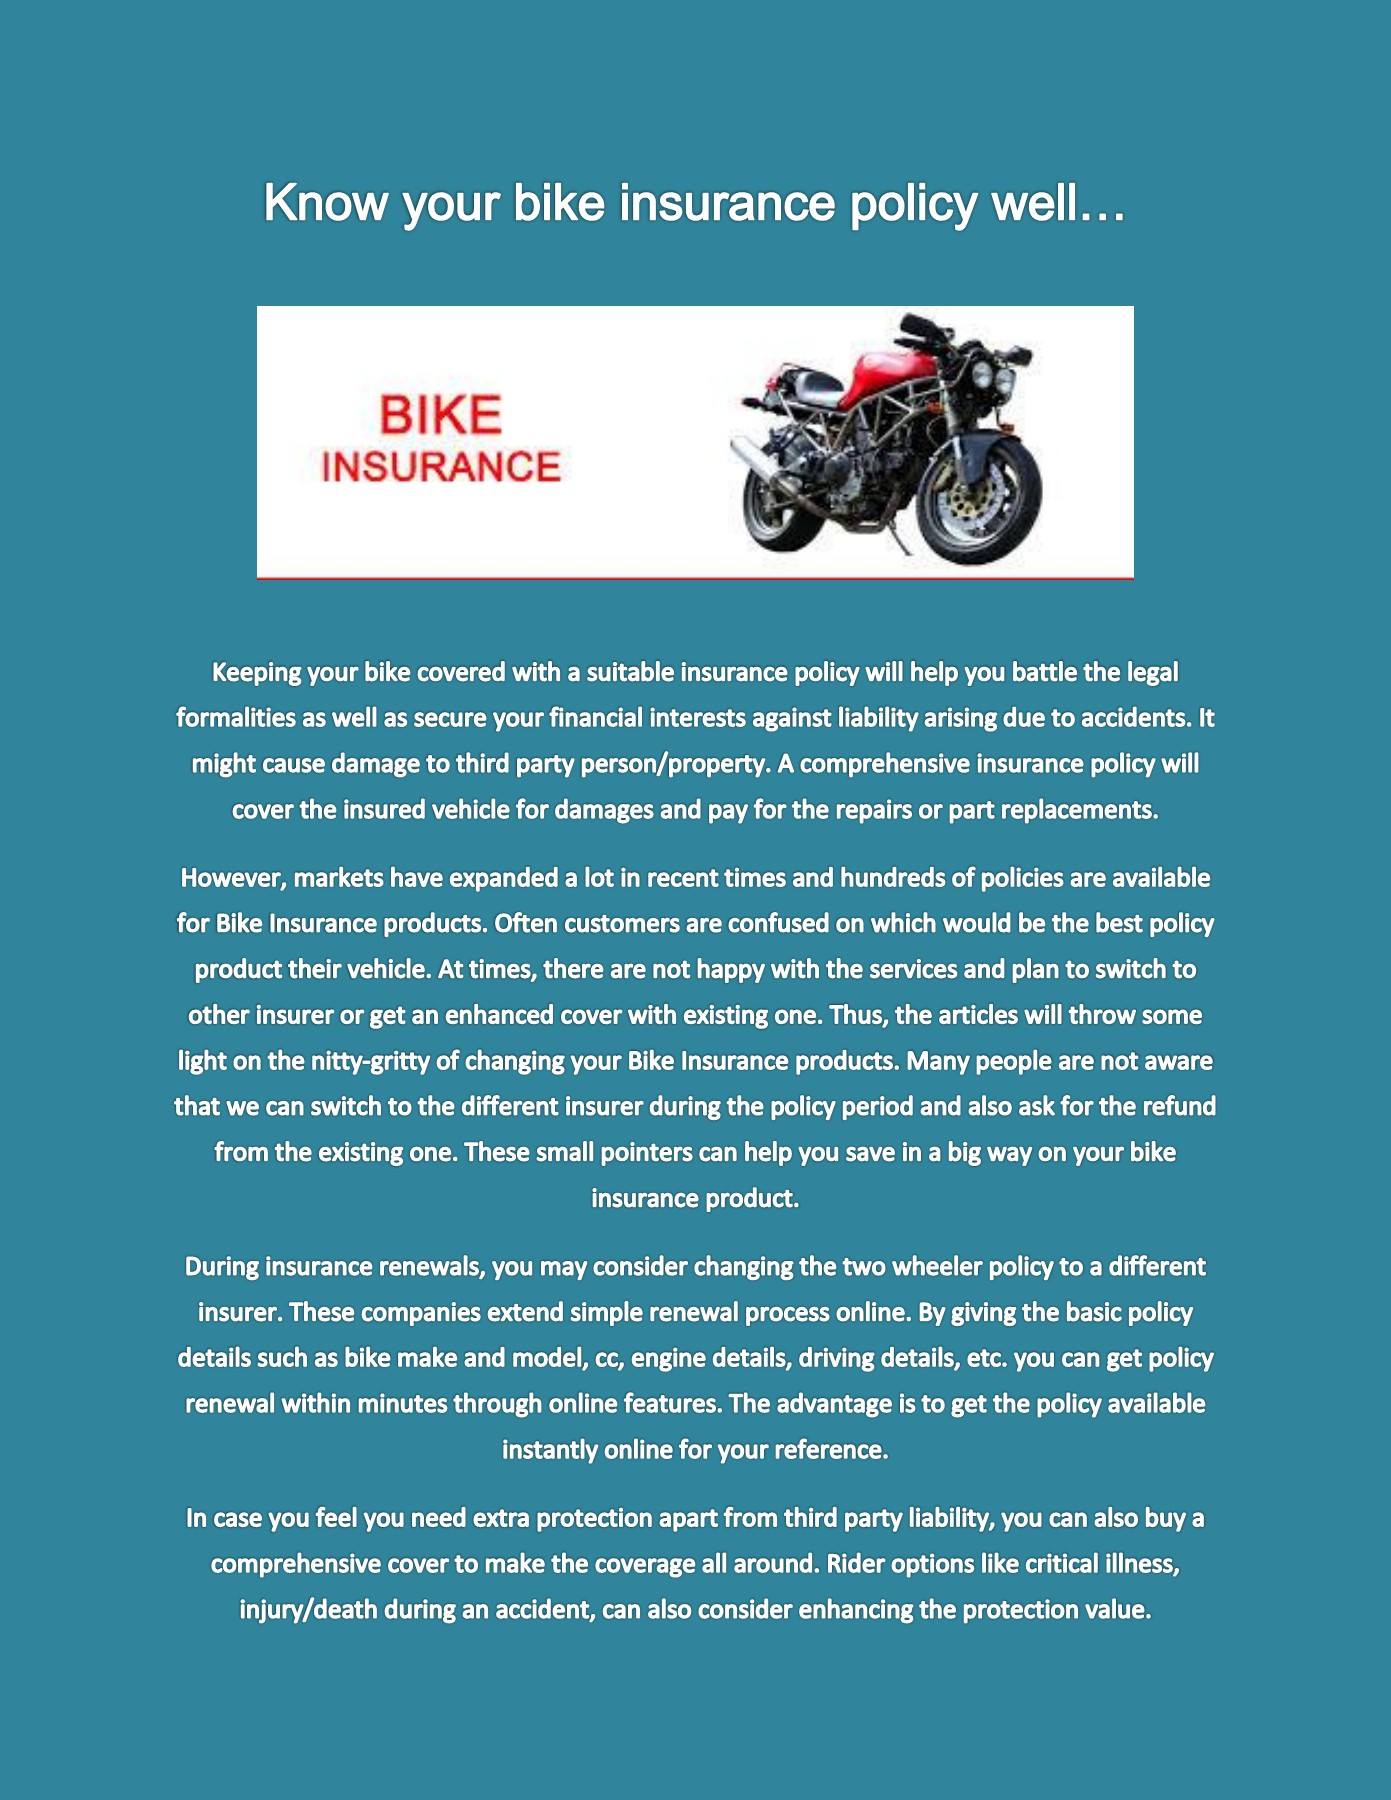 Know Your Bike Insurance Policy Well